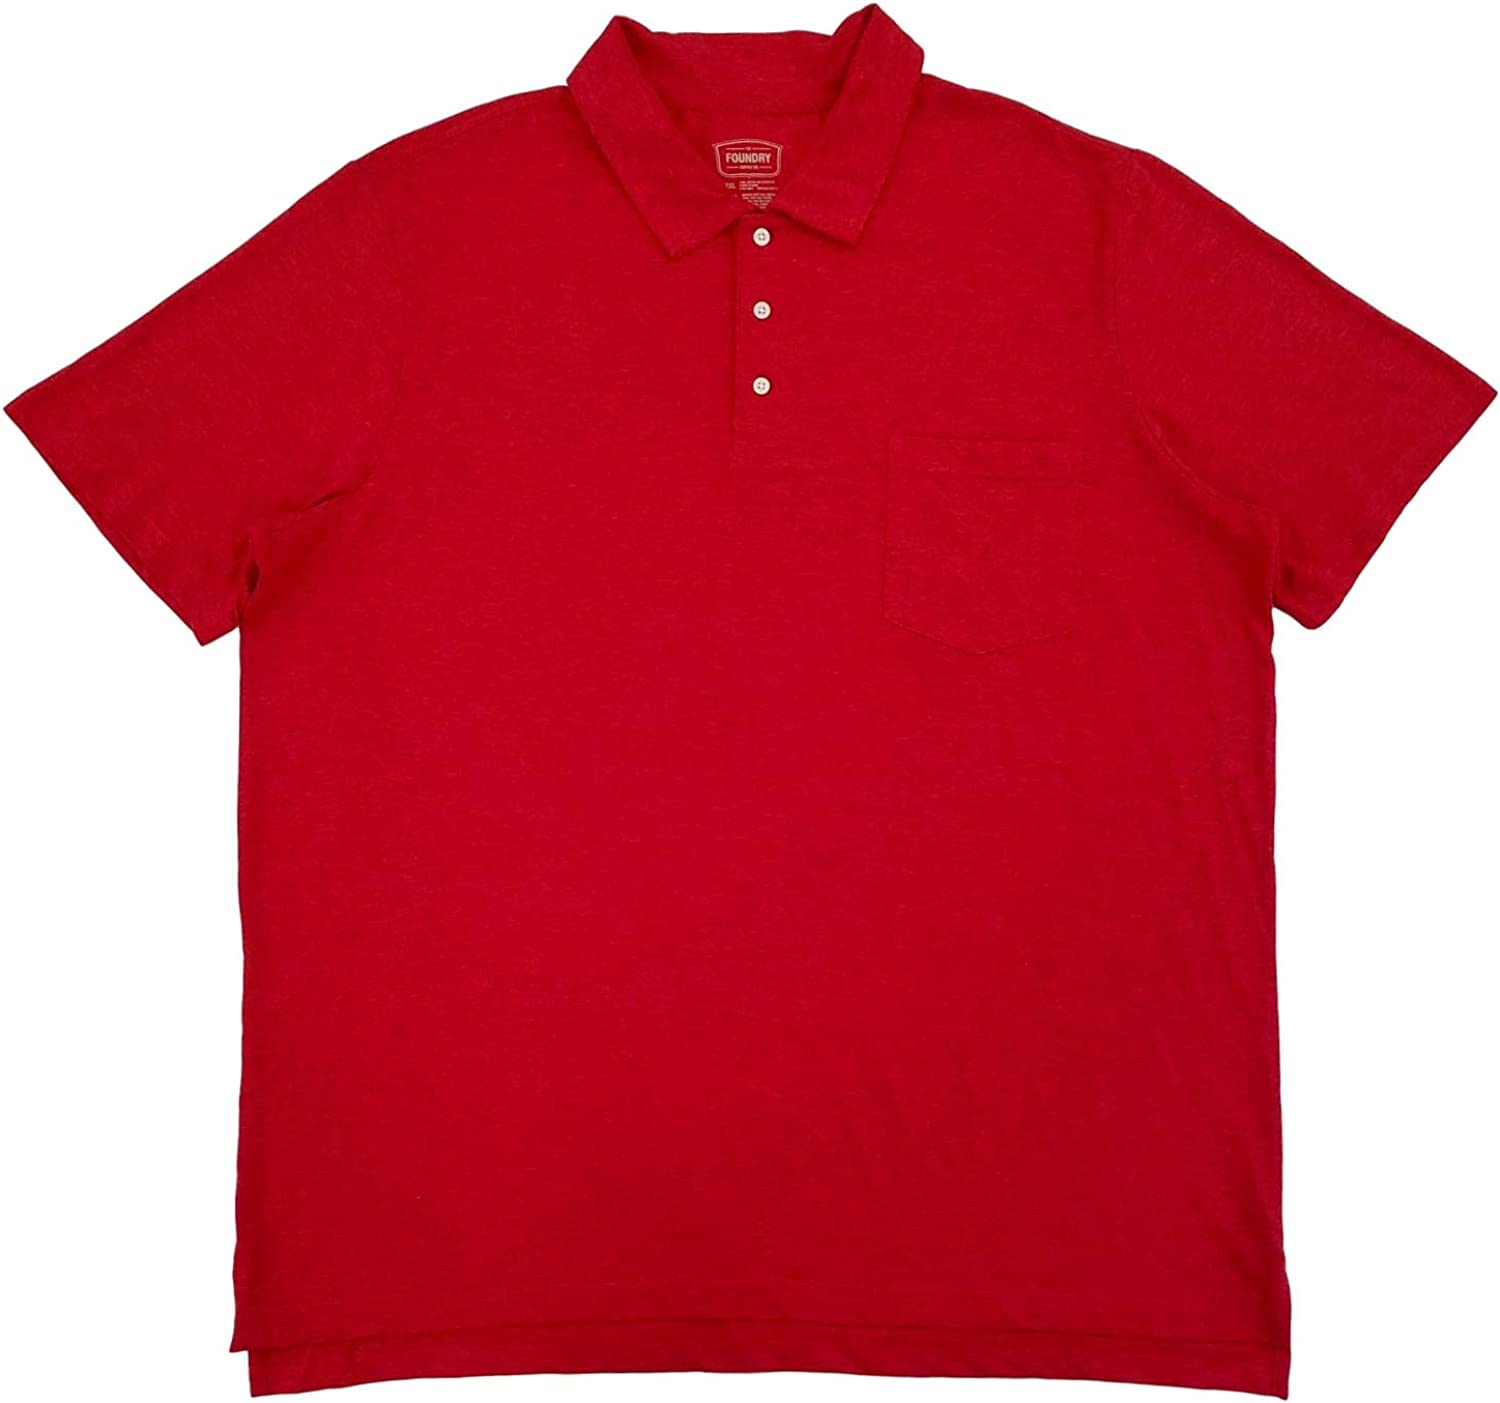 The Foundry Mens Big & Tall Red Barbados Cherry Heather Polo T-Shirt 2XLT